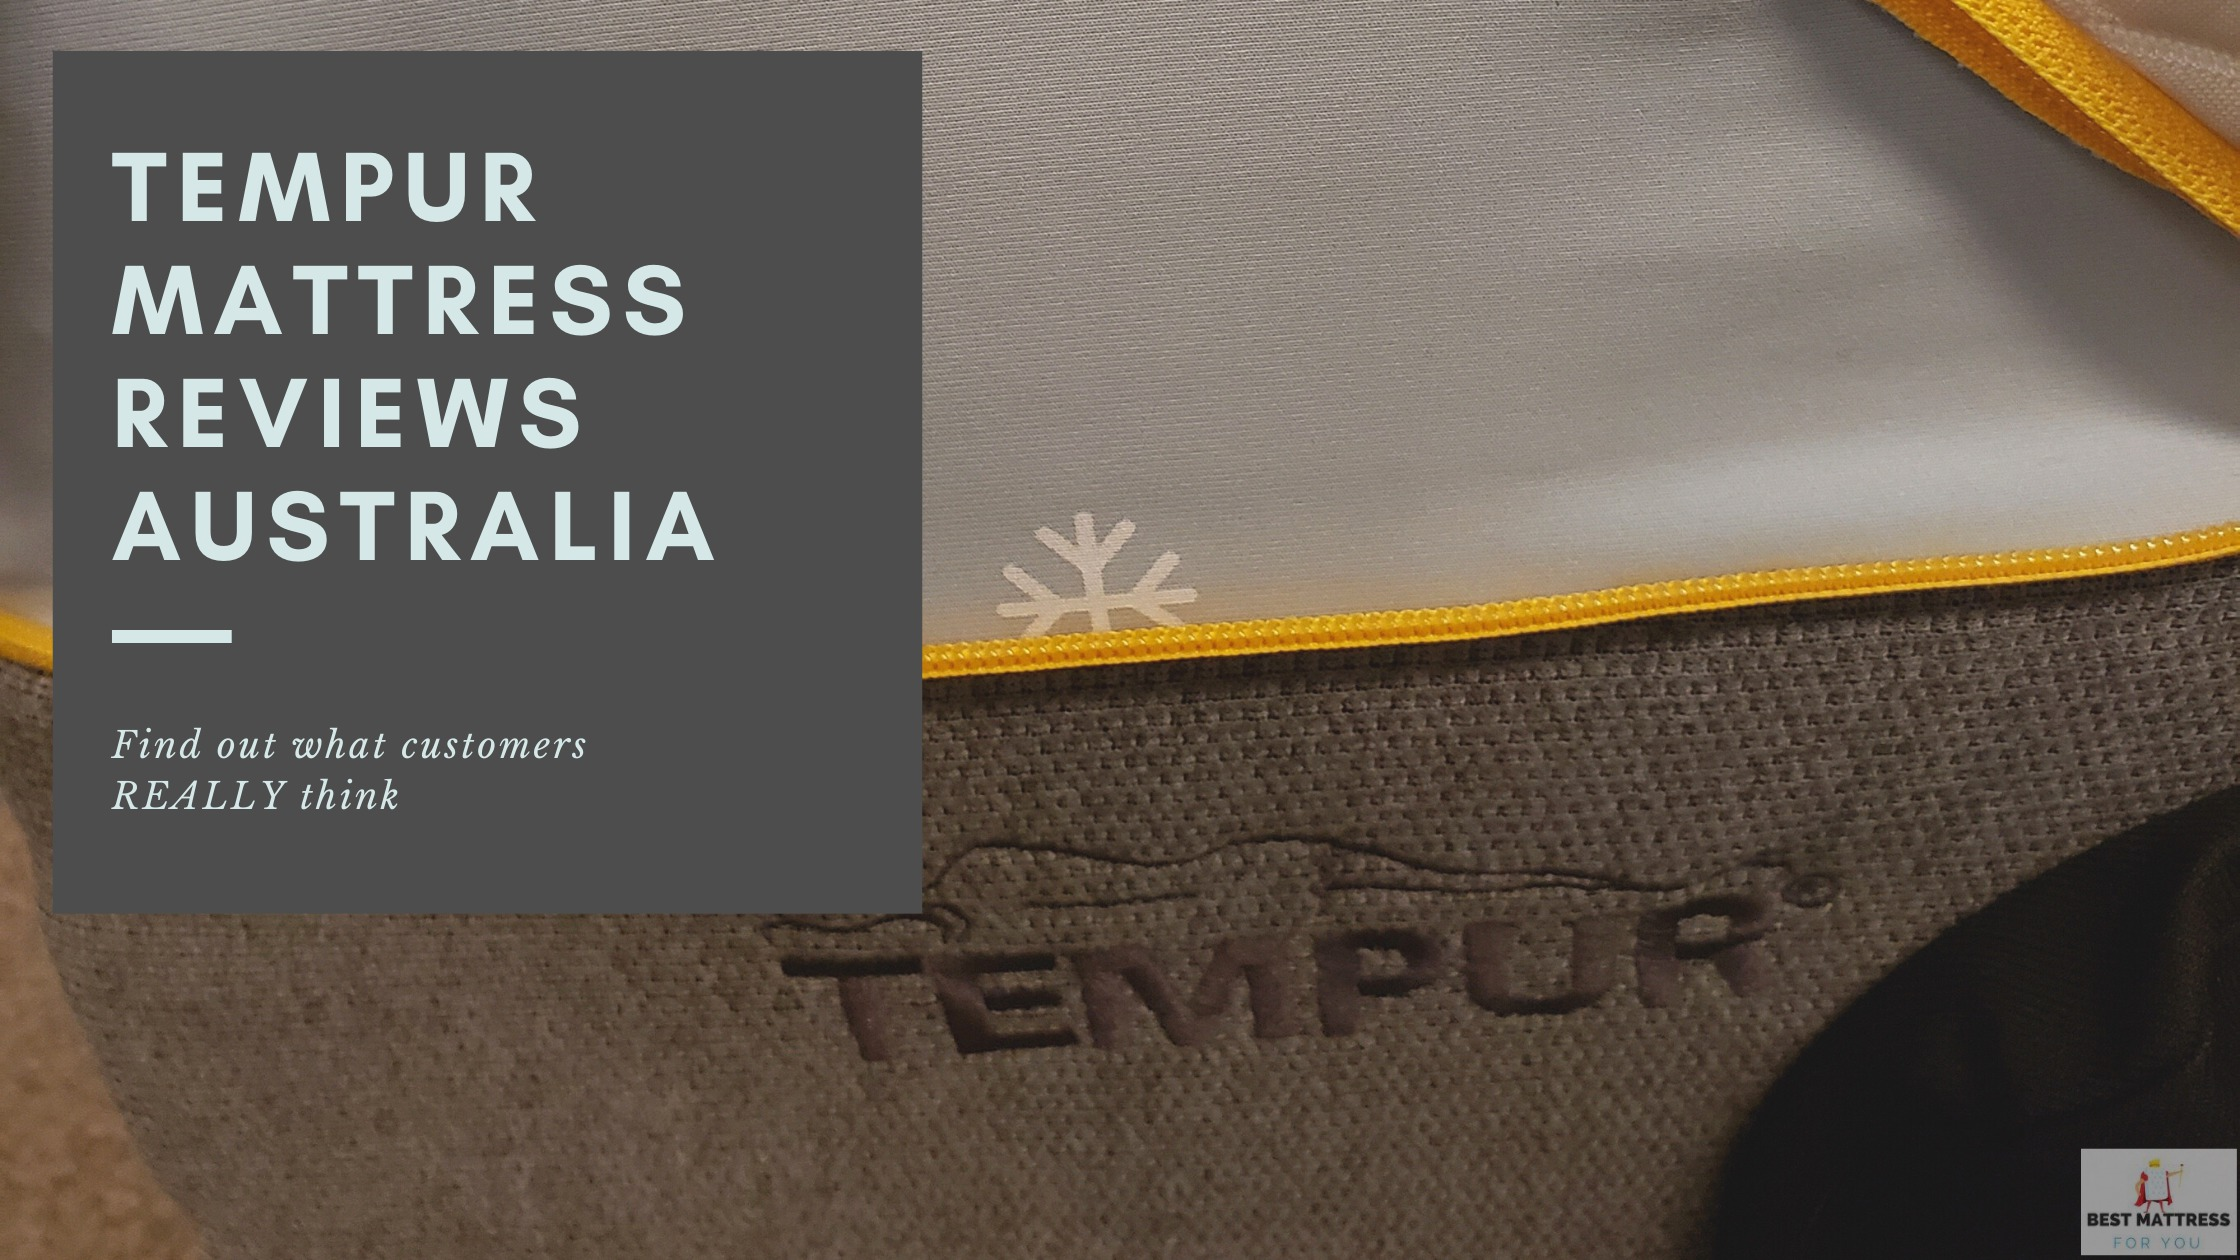 Tempur Mattress Reviews Australia